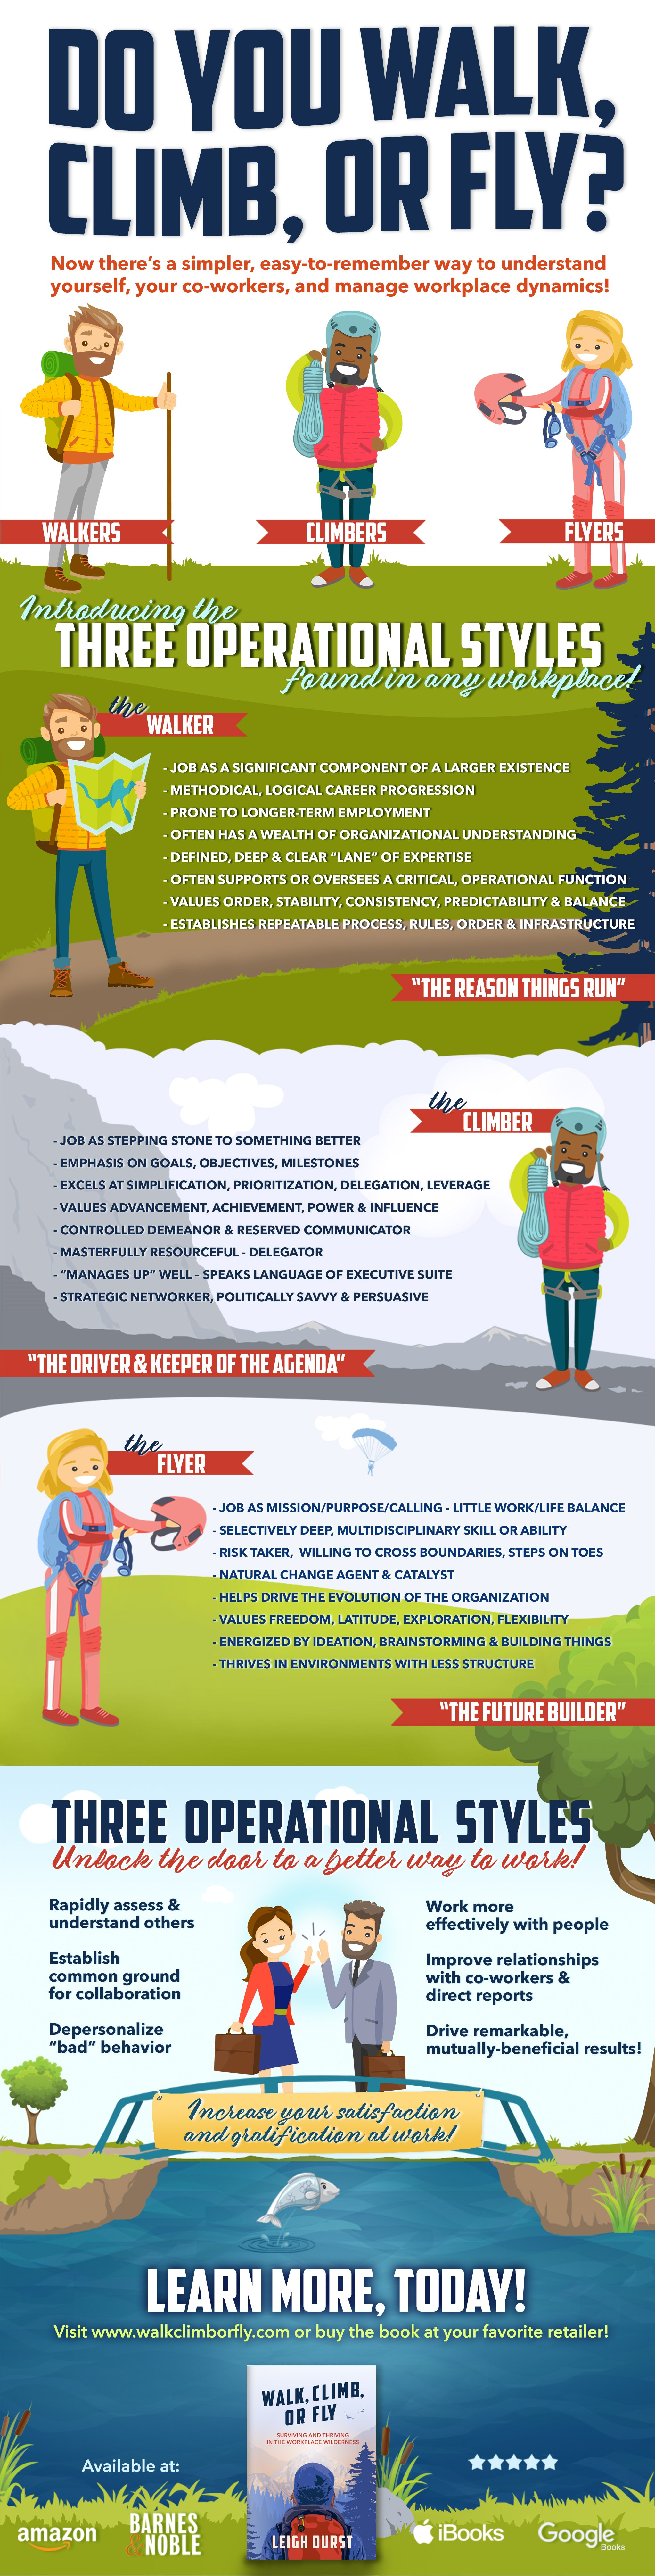 Operational Styles Infographic - Do you Walk Climb or Fly?